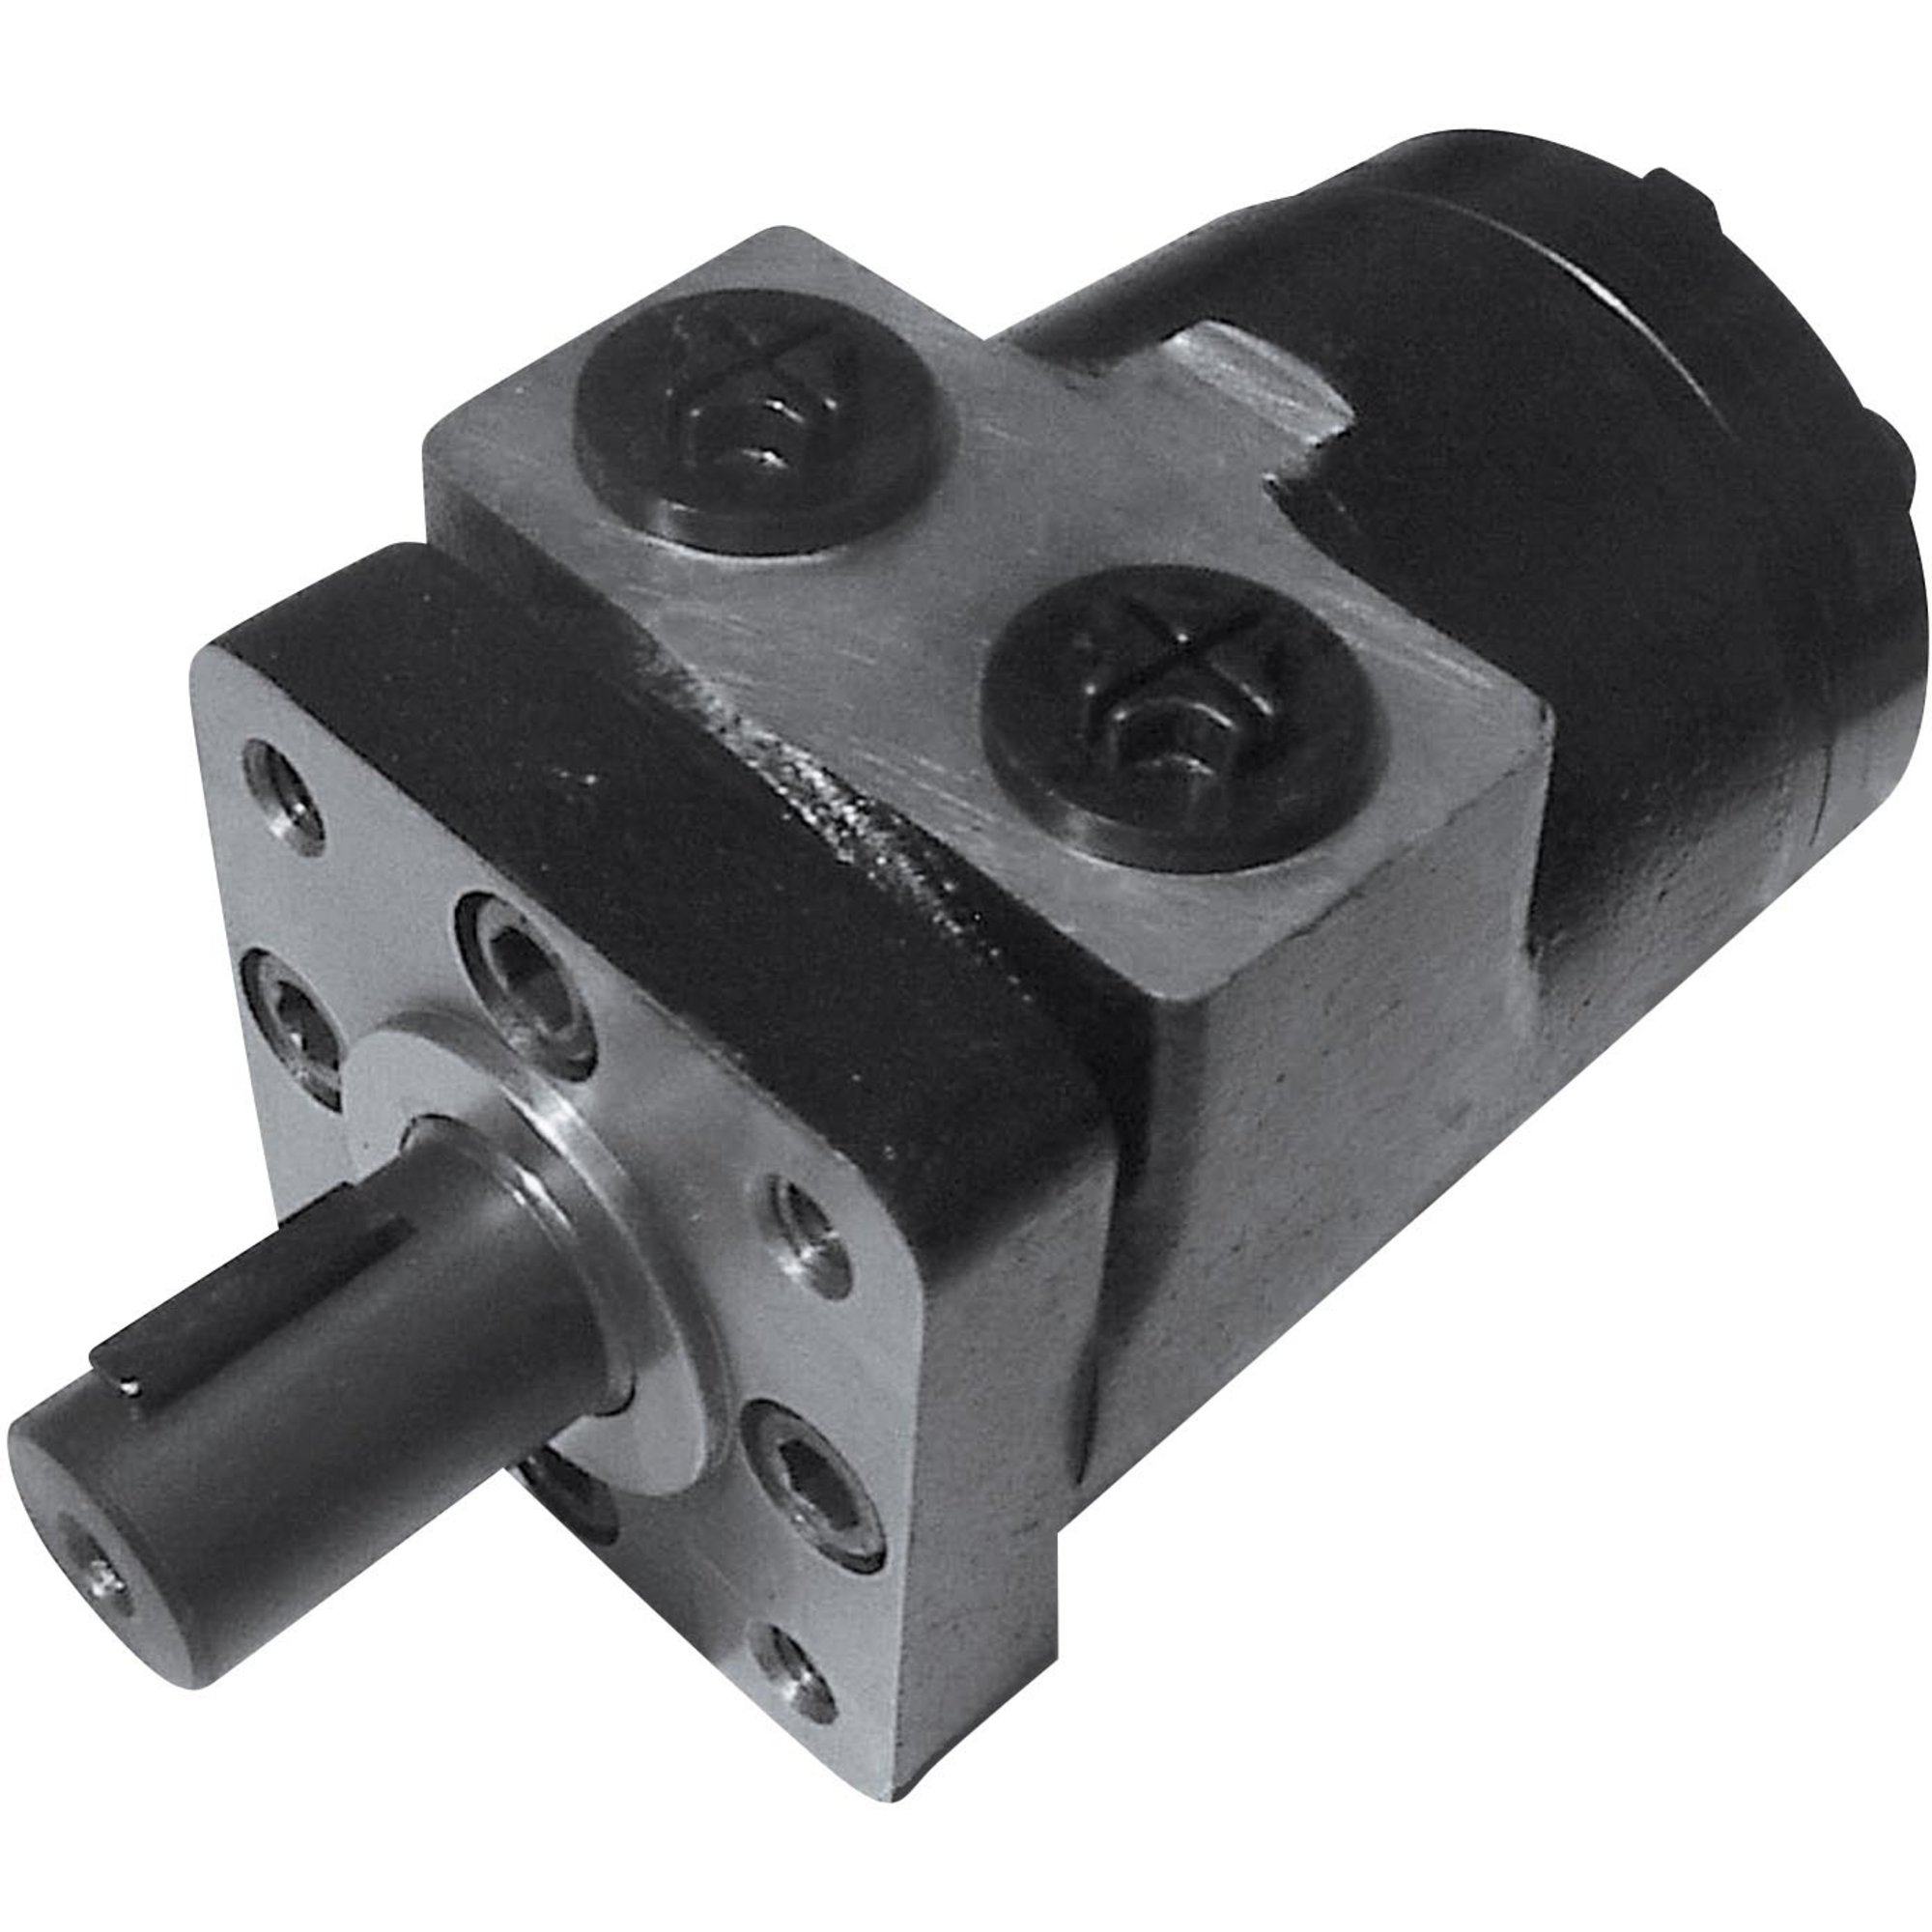 dynamic low speed high torque hydraulic motor 15 8 gpm